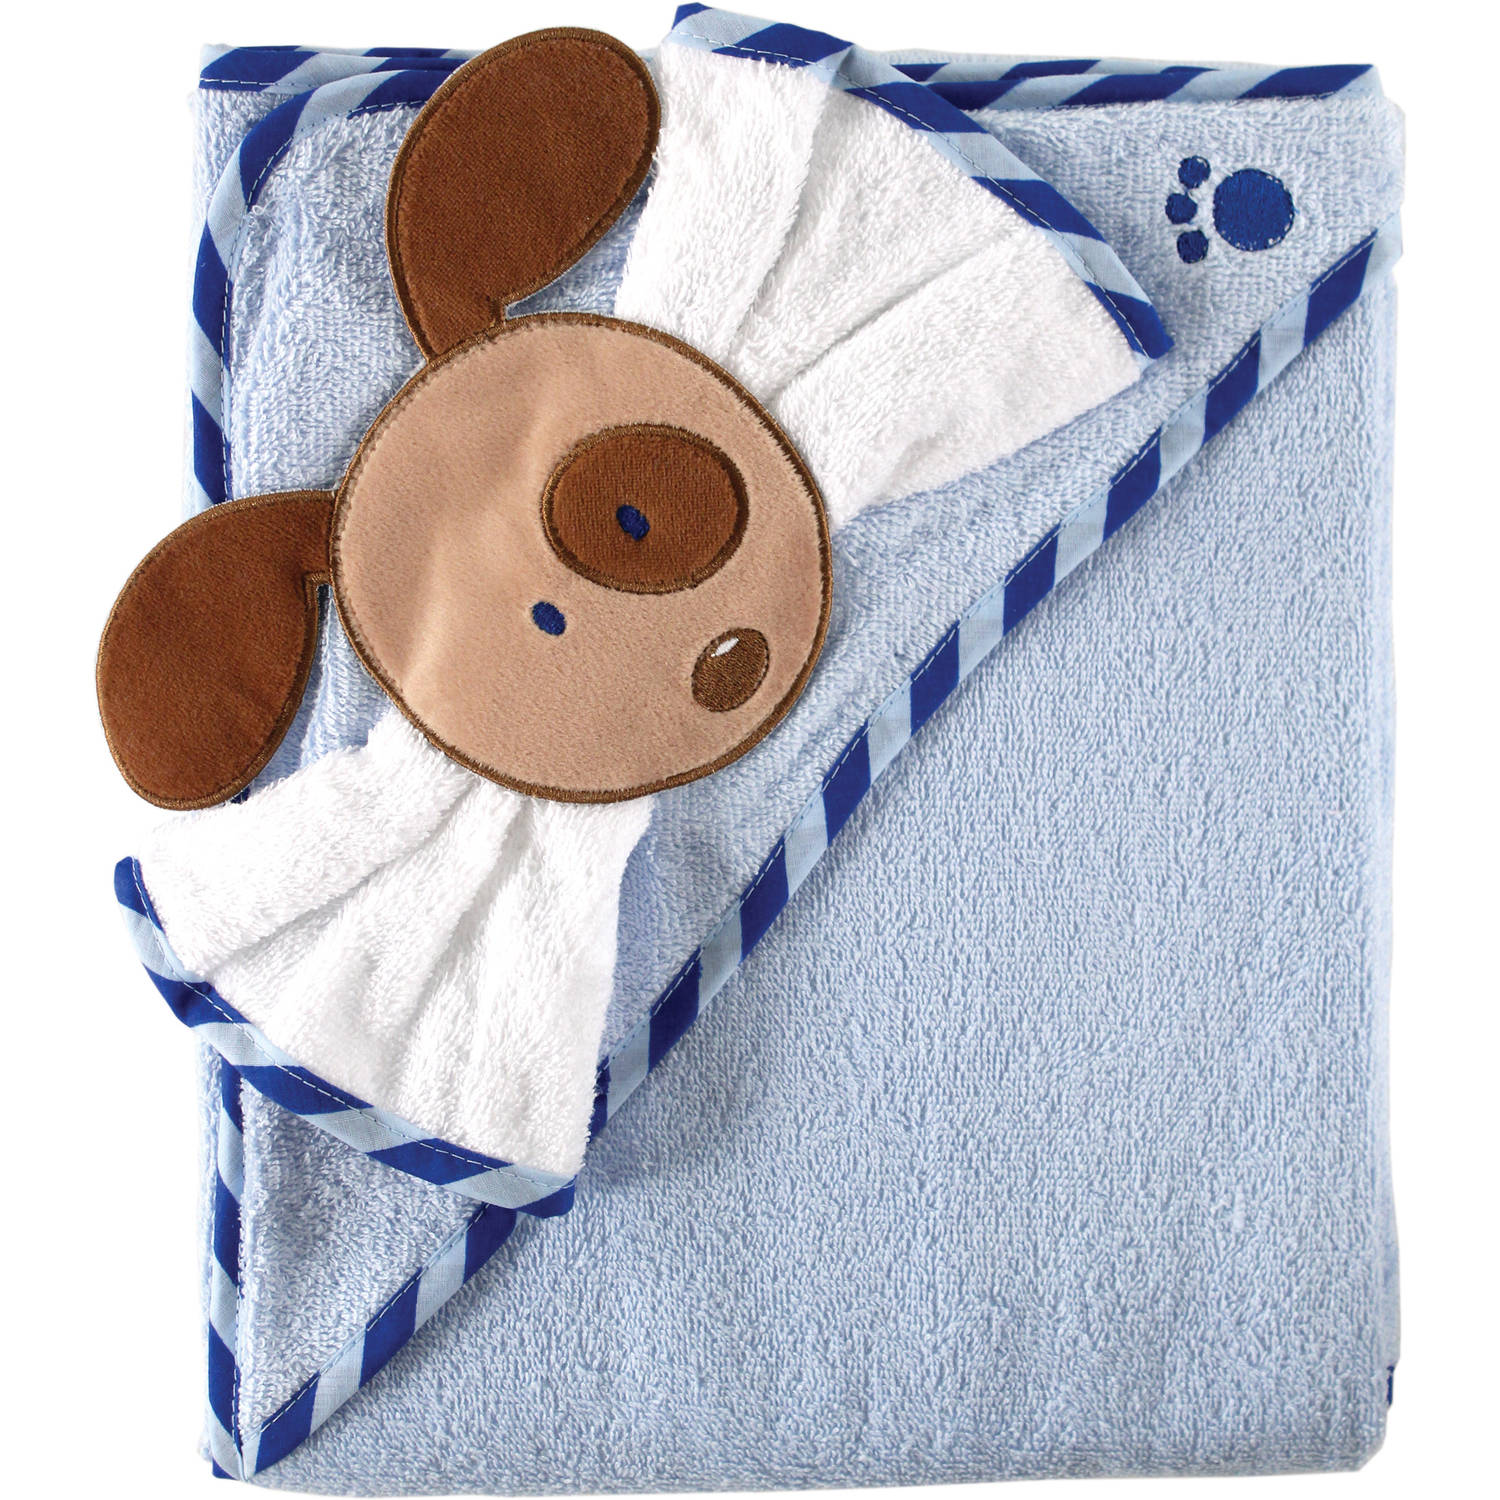 Luvable Friends Fancy Hooded Towel, Washcloth, Choose Your Color